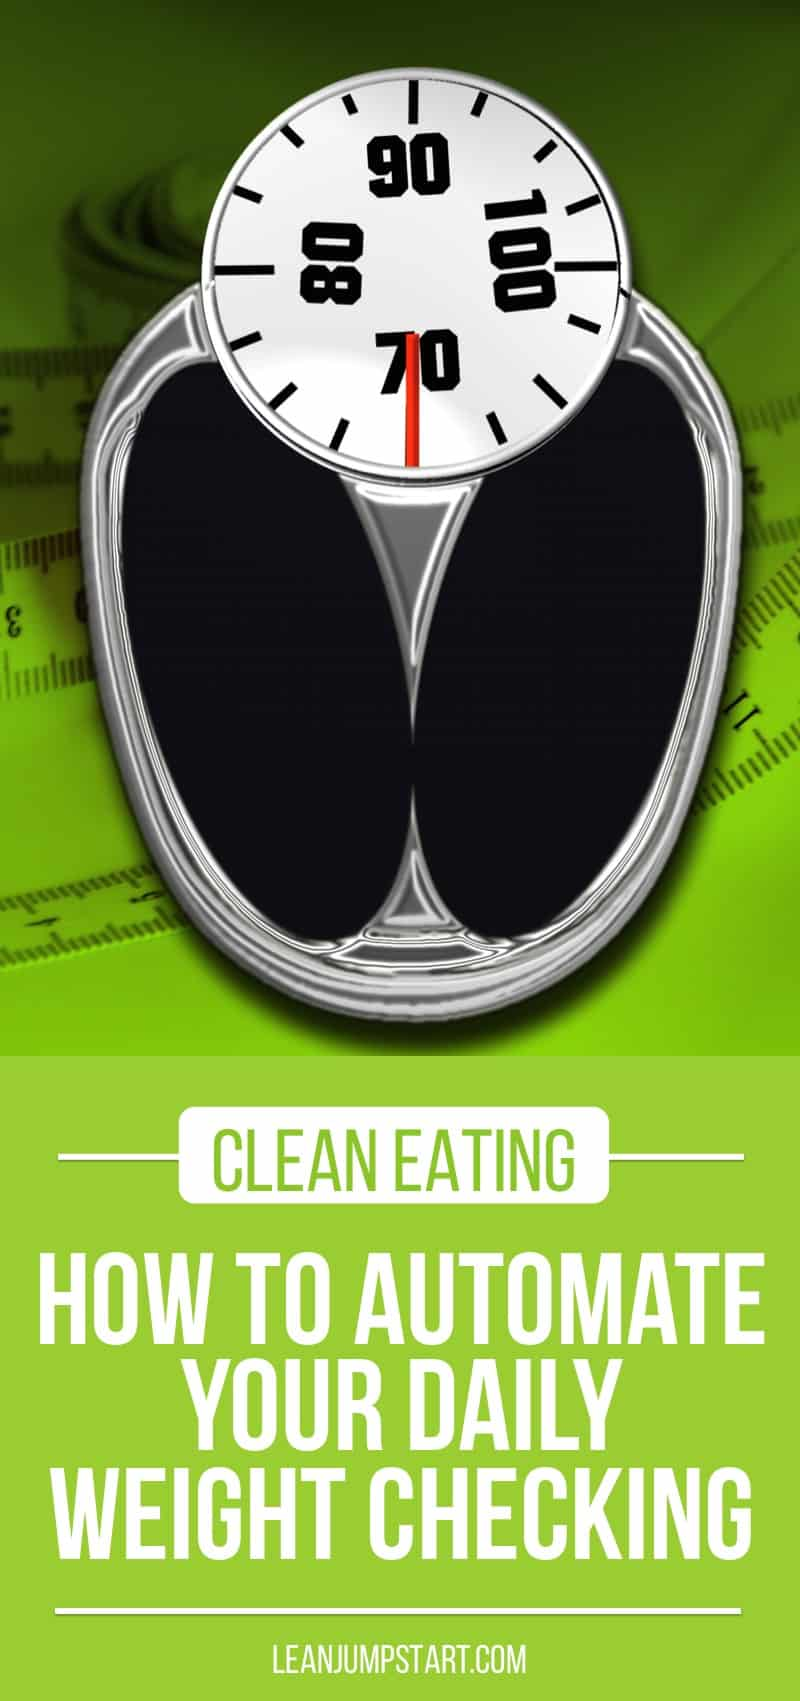 clean eating: how to automate your daily weight checking